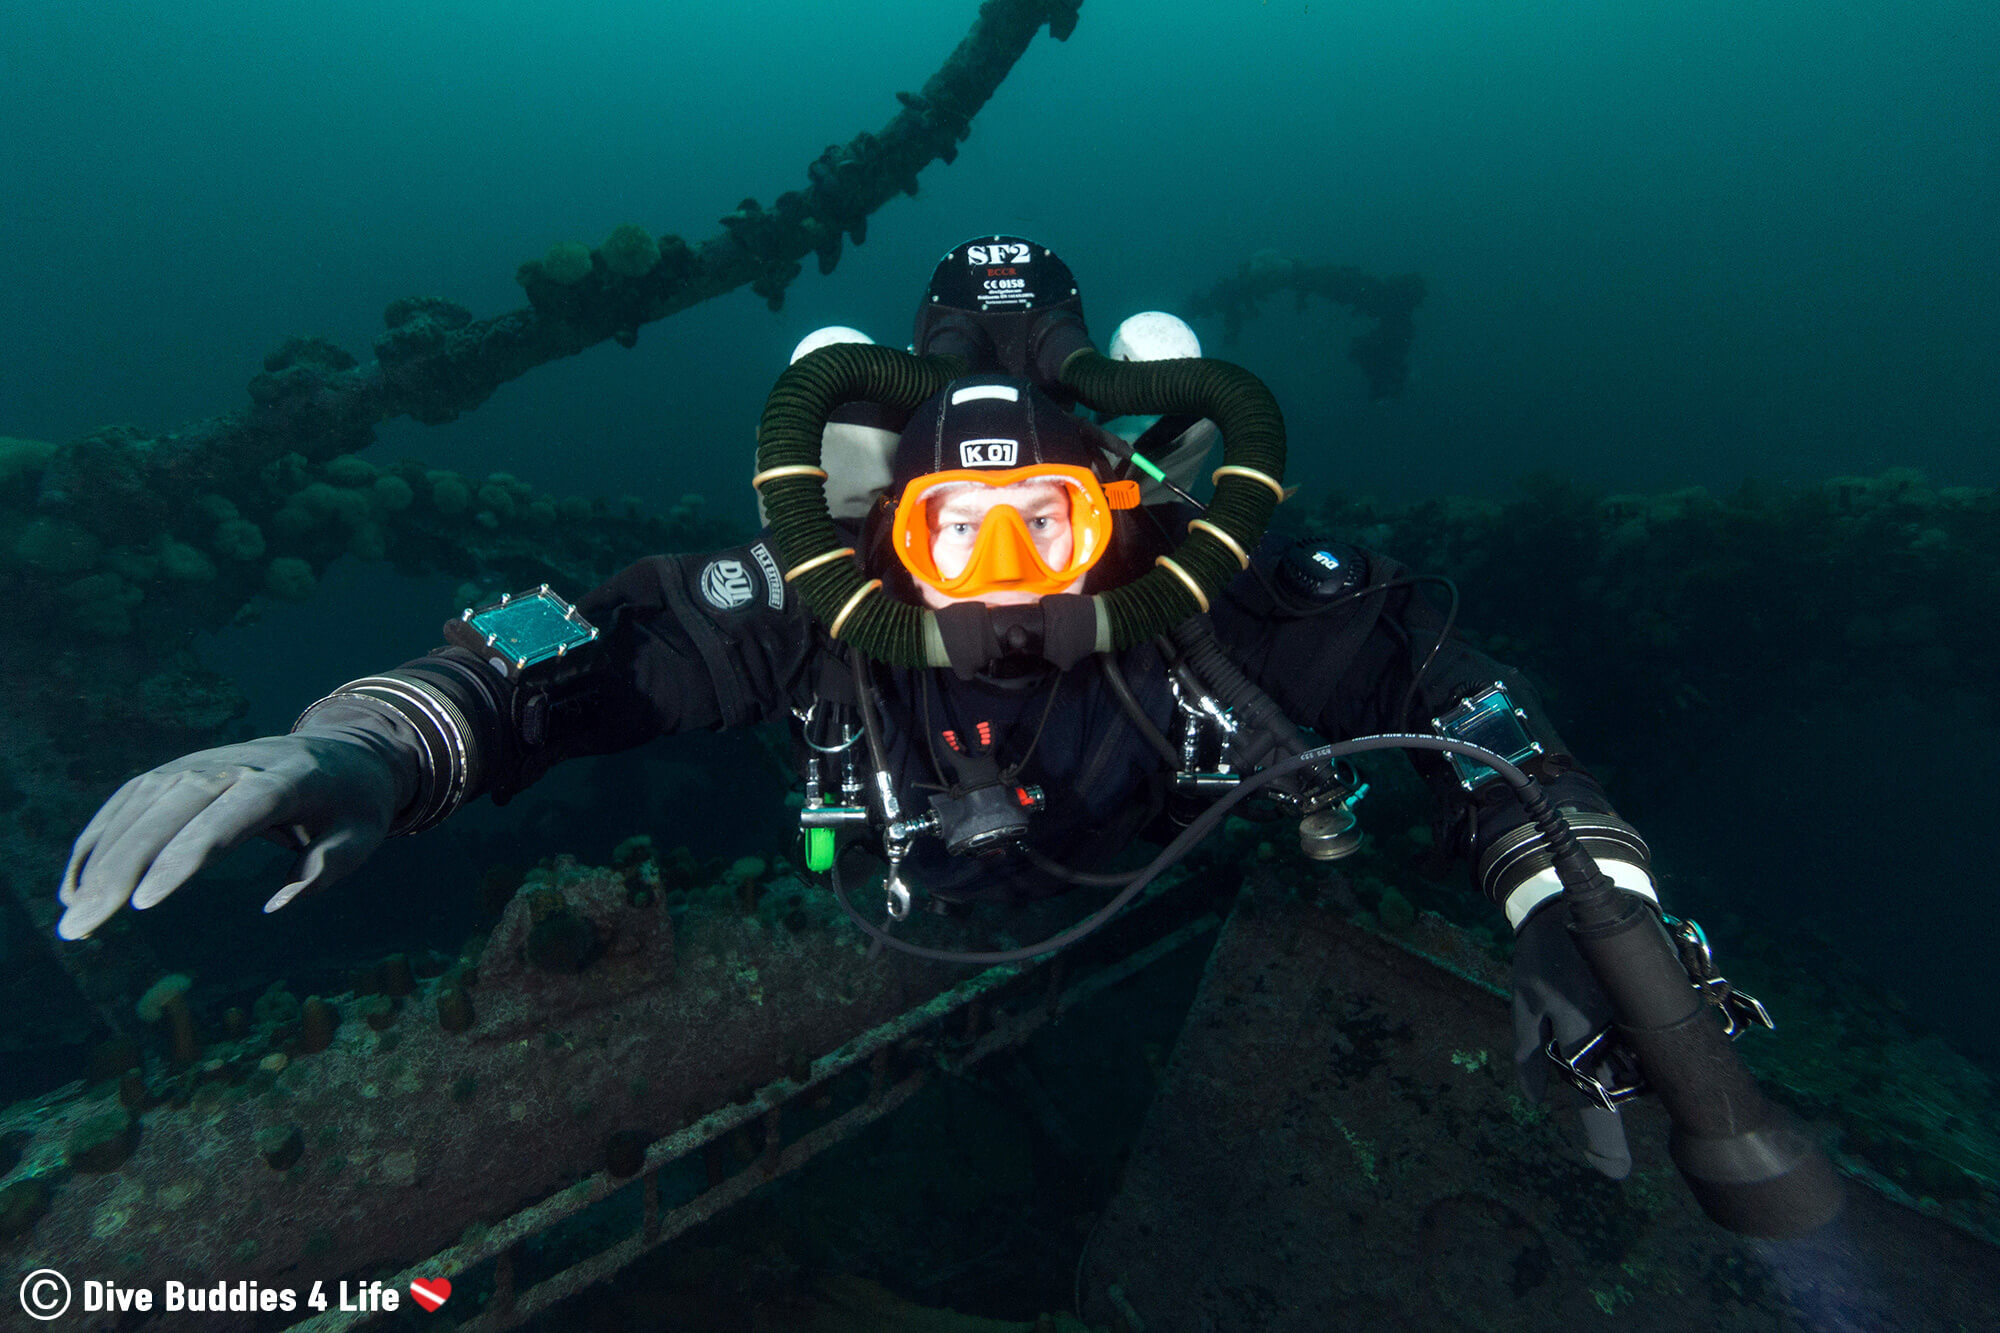 Technical Dive Mike On The Lord Strathcona Shipwreck In Newfoundland, Scuba Diving Canada